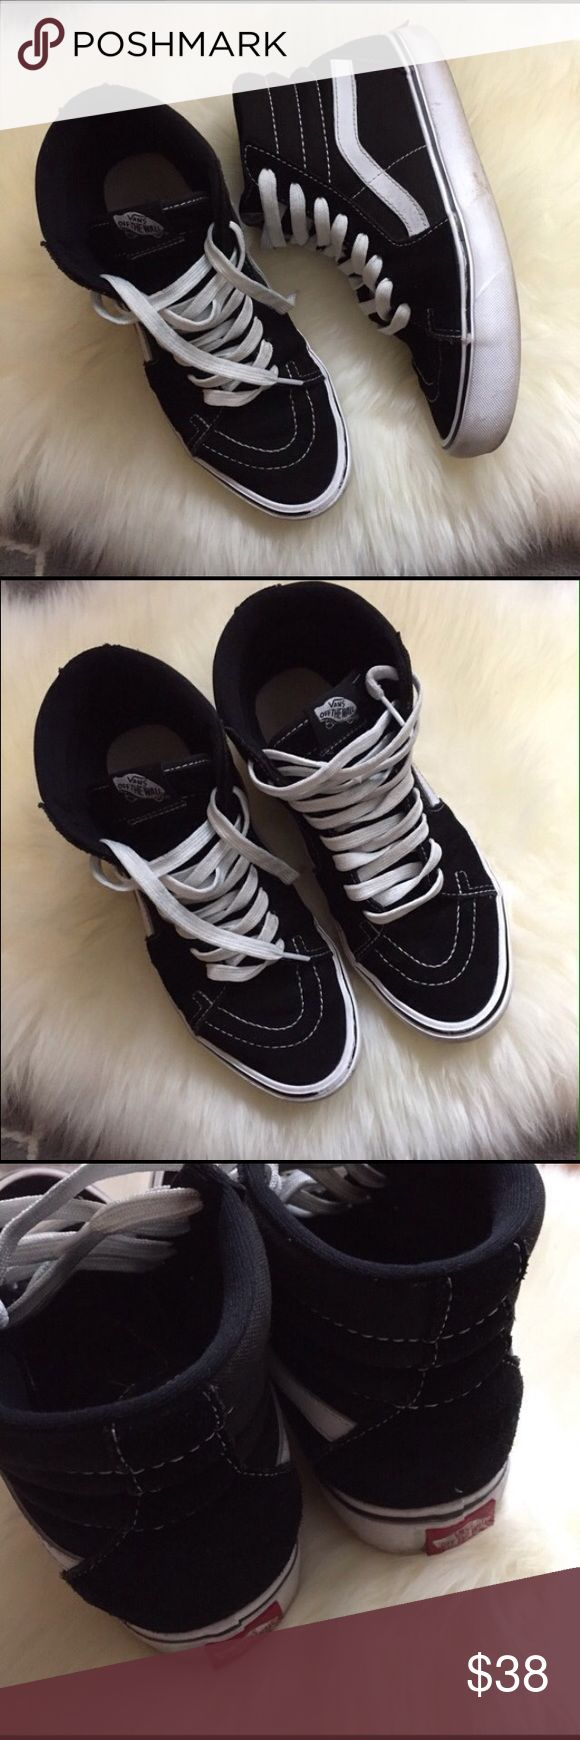 High Top Sk8 Hi Vans Used but in good condition in black and white canvas size 8 in men's and 9.5 women's *$28 onⓂ️ Vans Shoes Sneakers